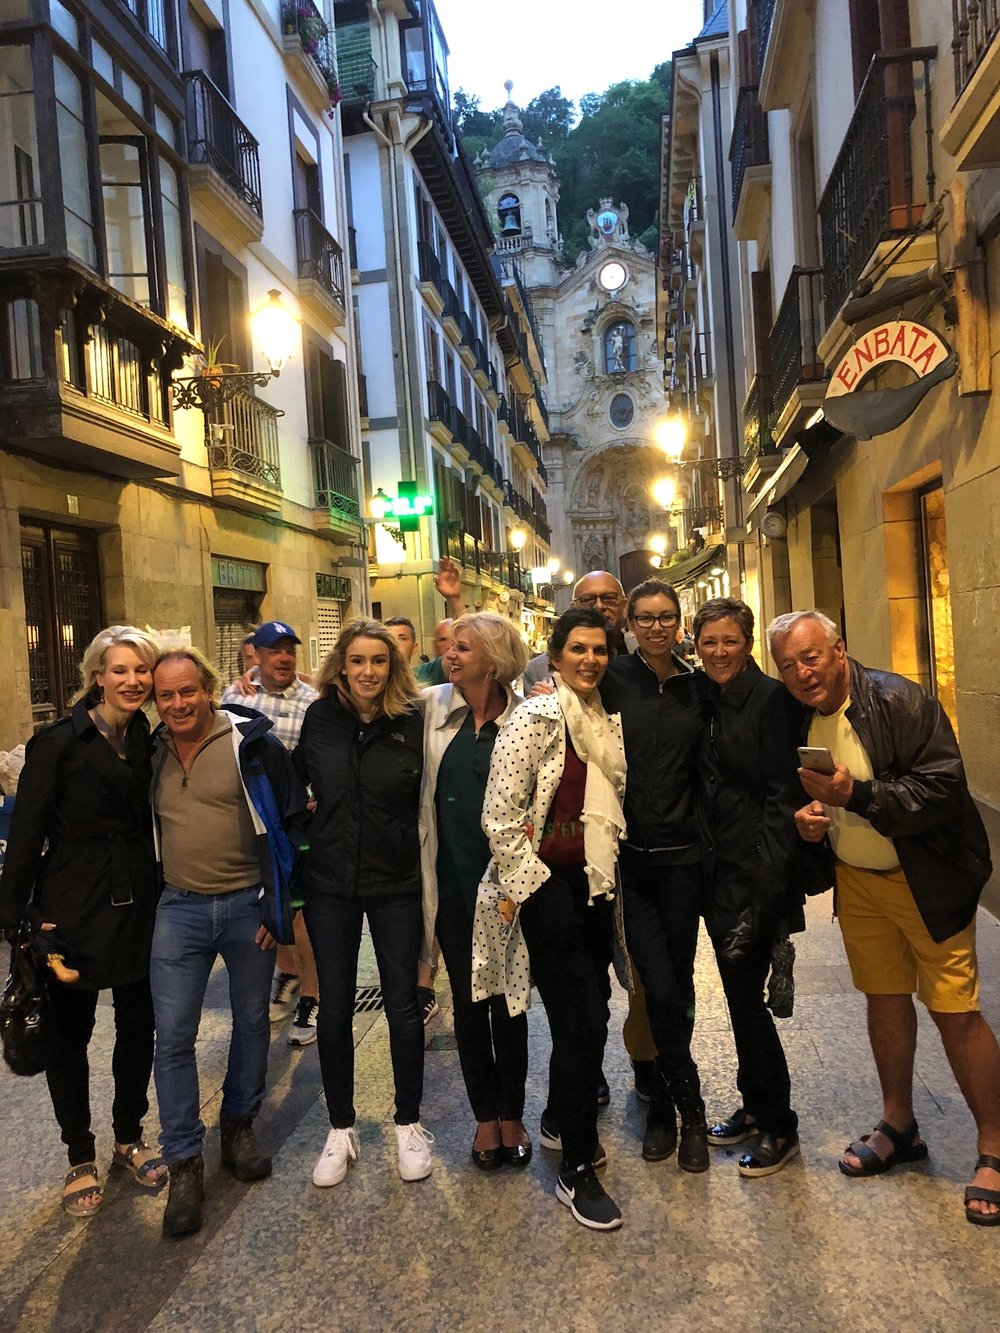 The Spain 2018 Travelers in San Sebastian